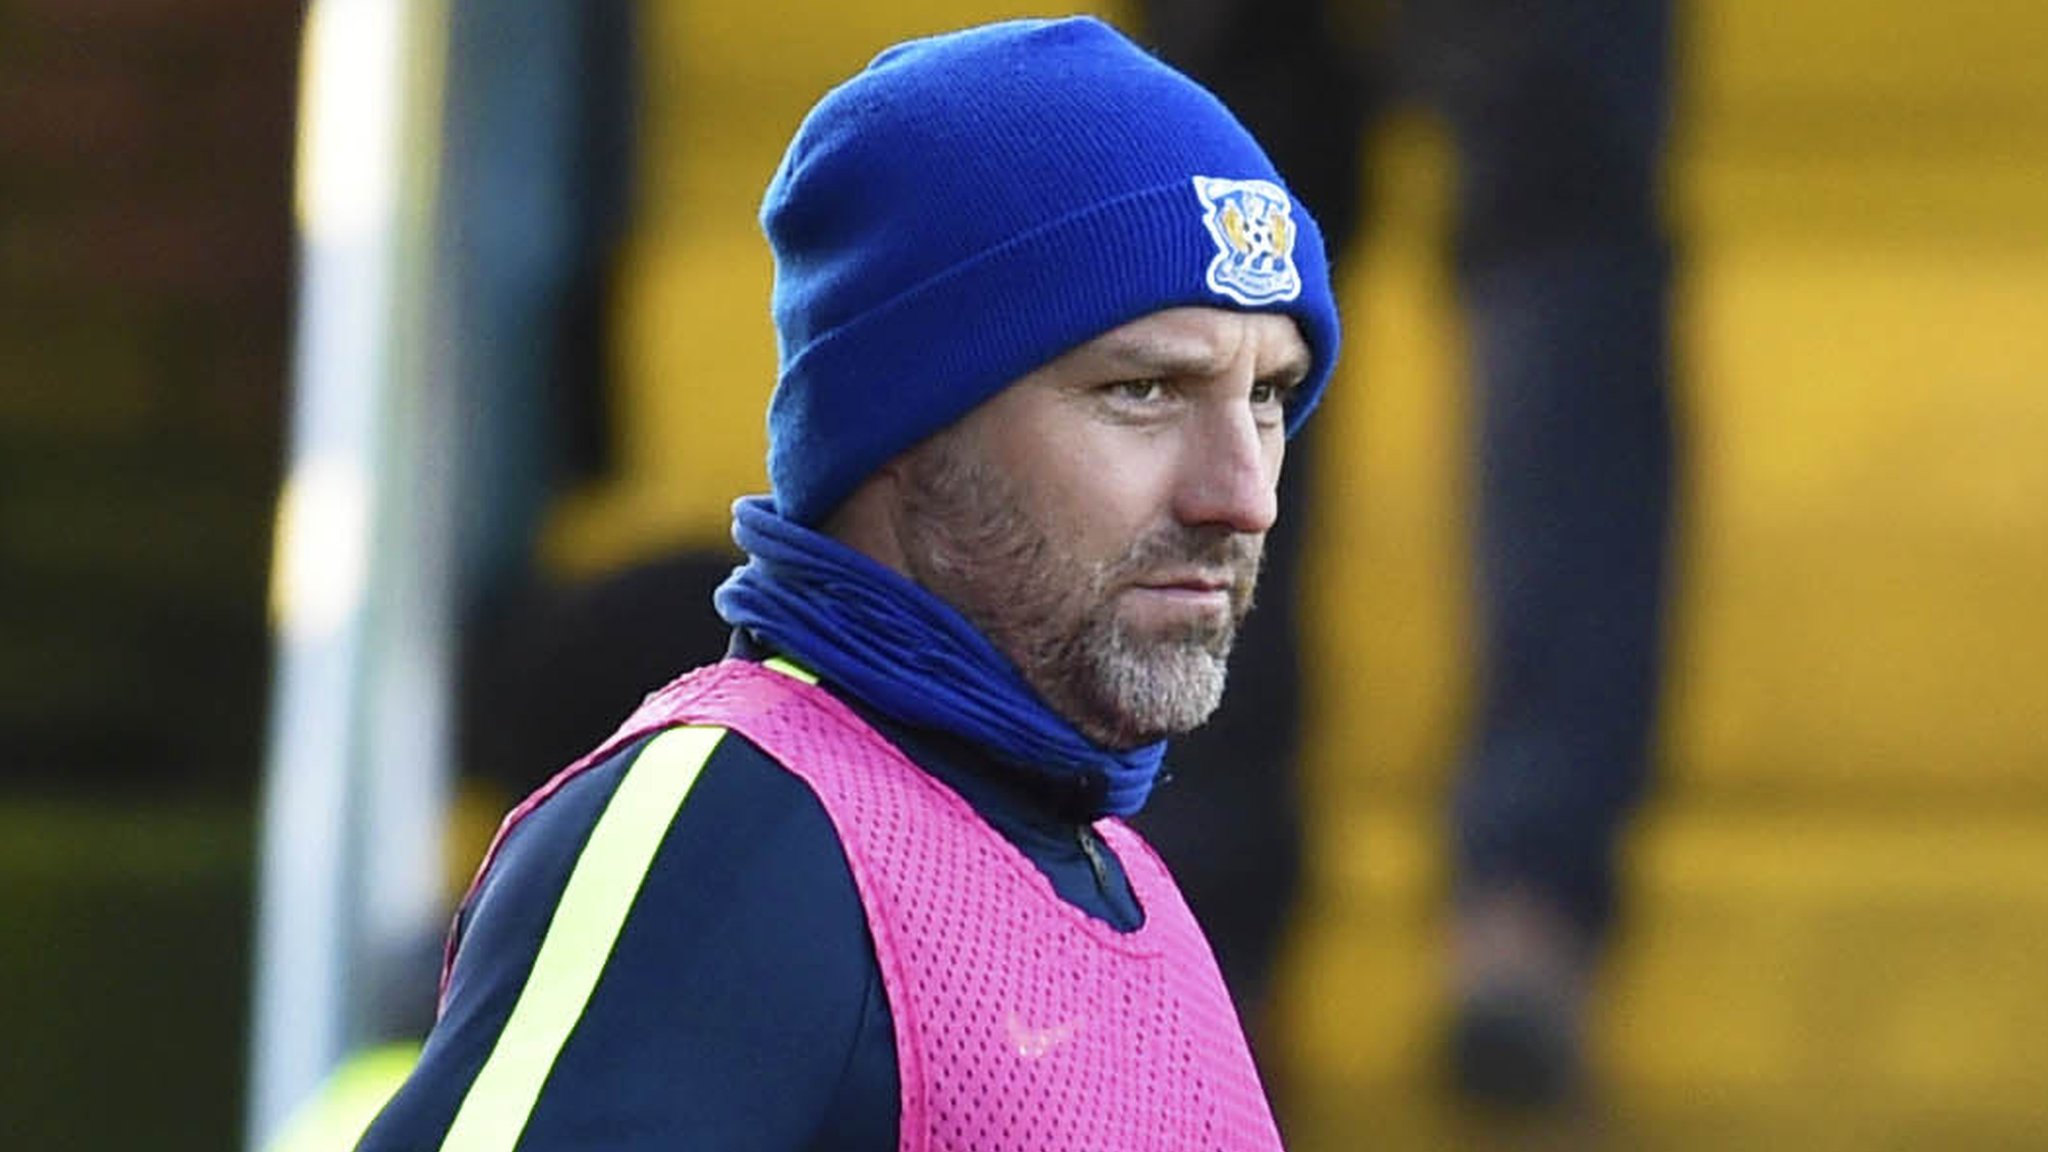 Kris Boyd urges action on coins before 'something serious' happens